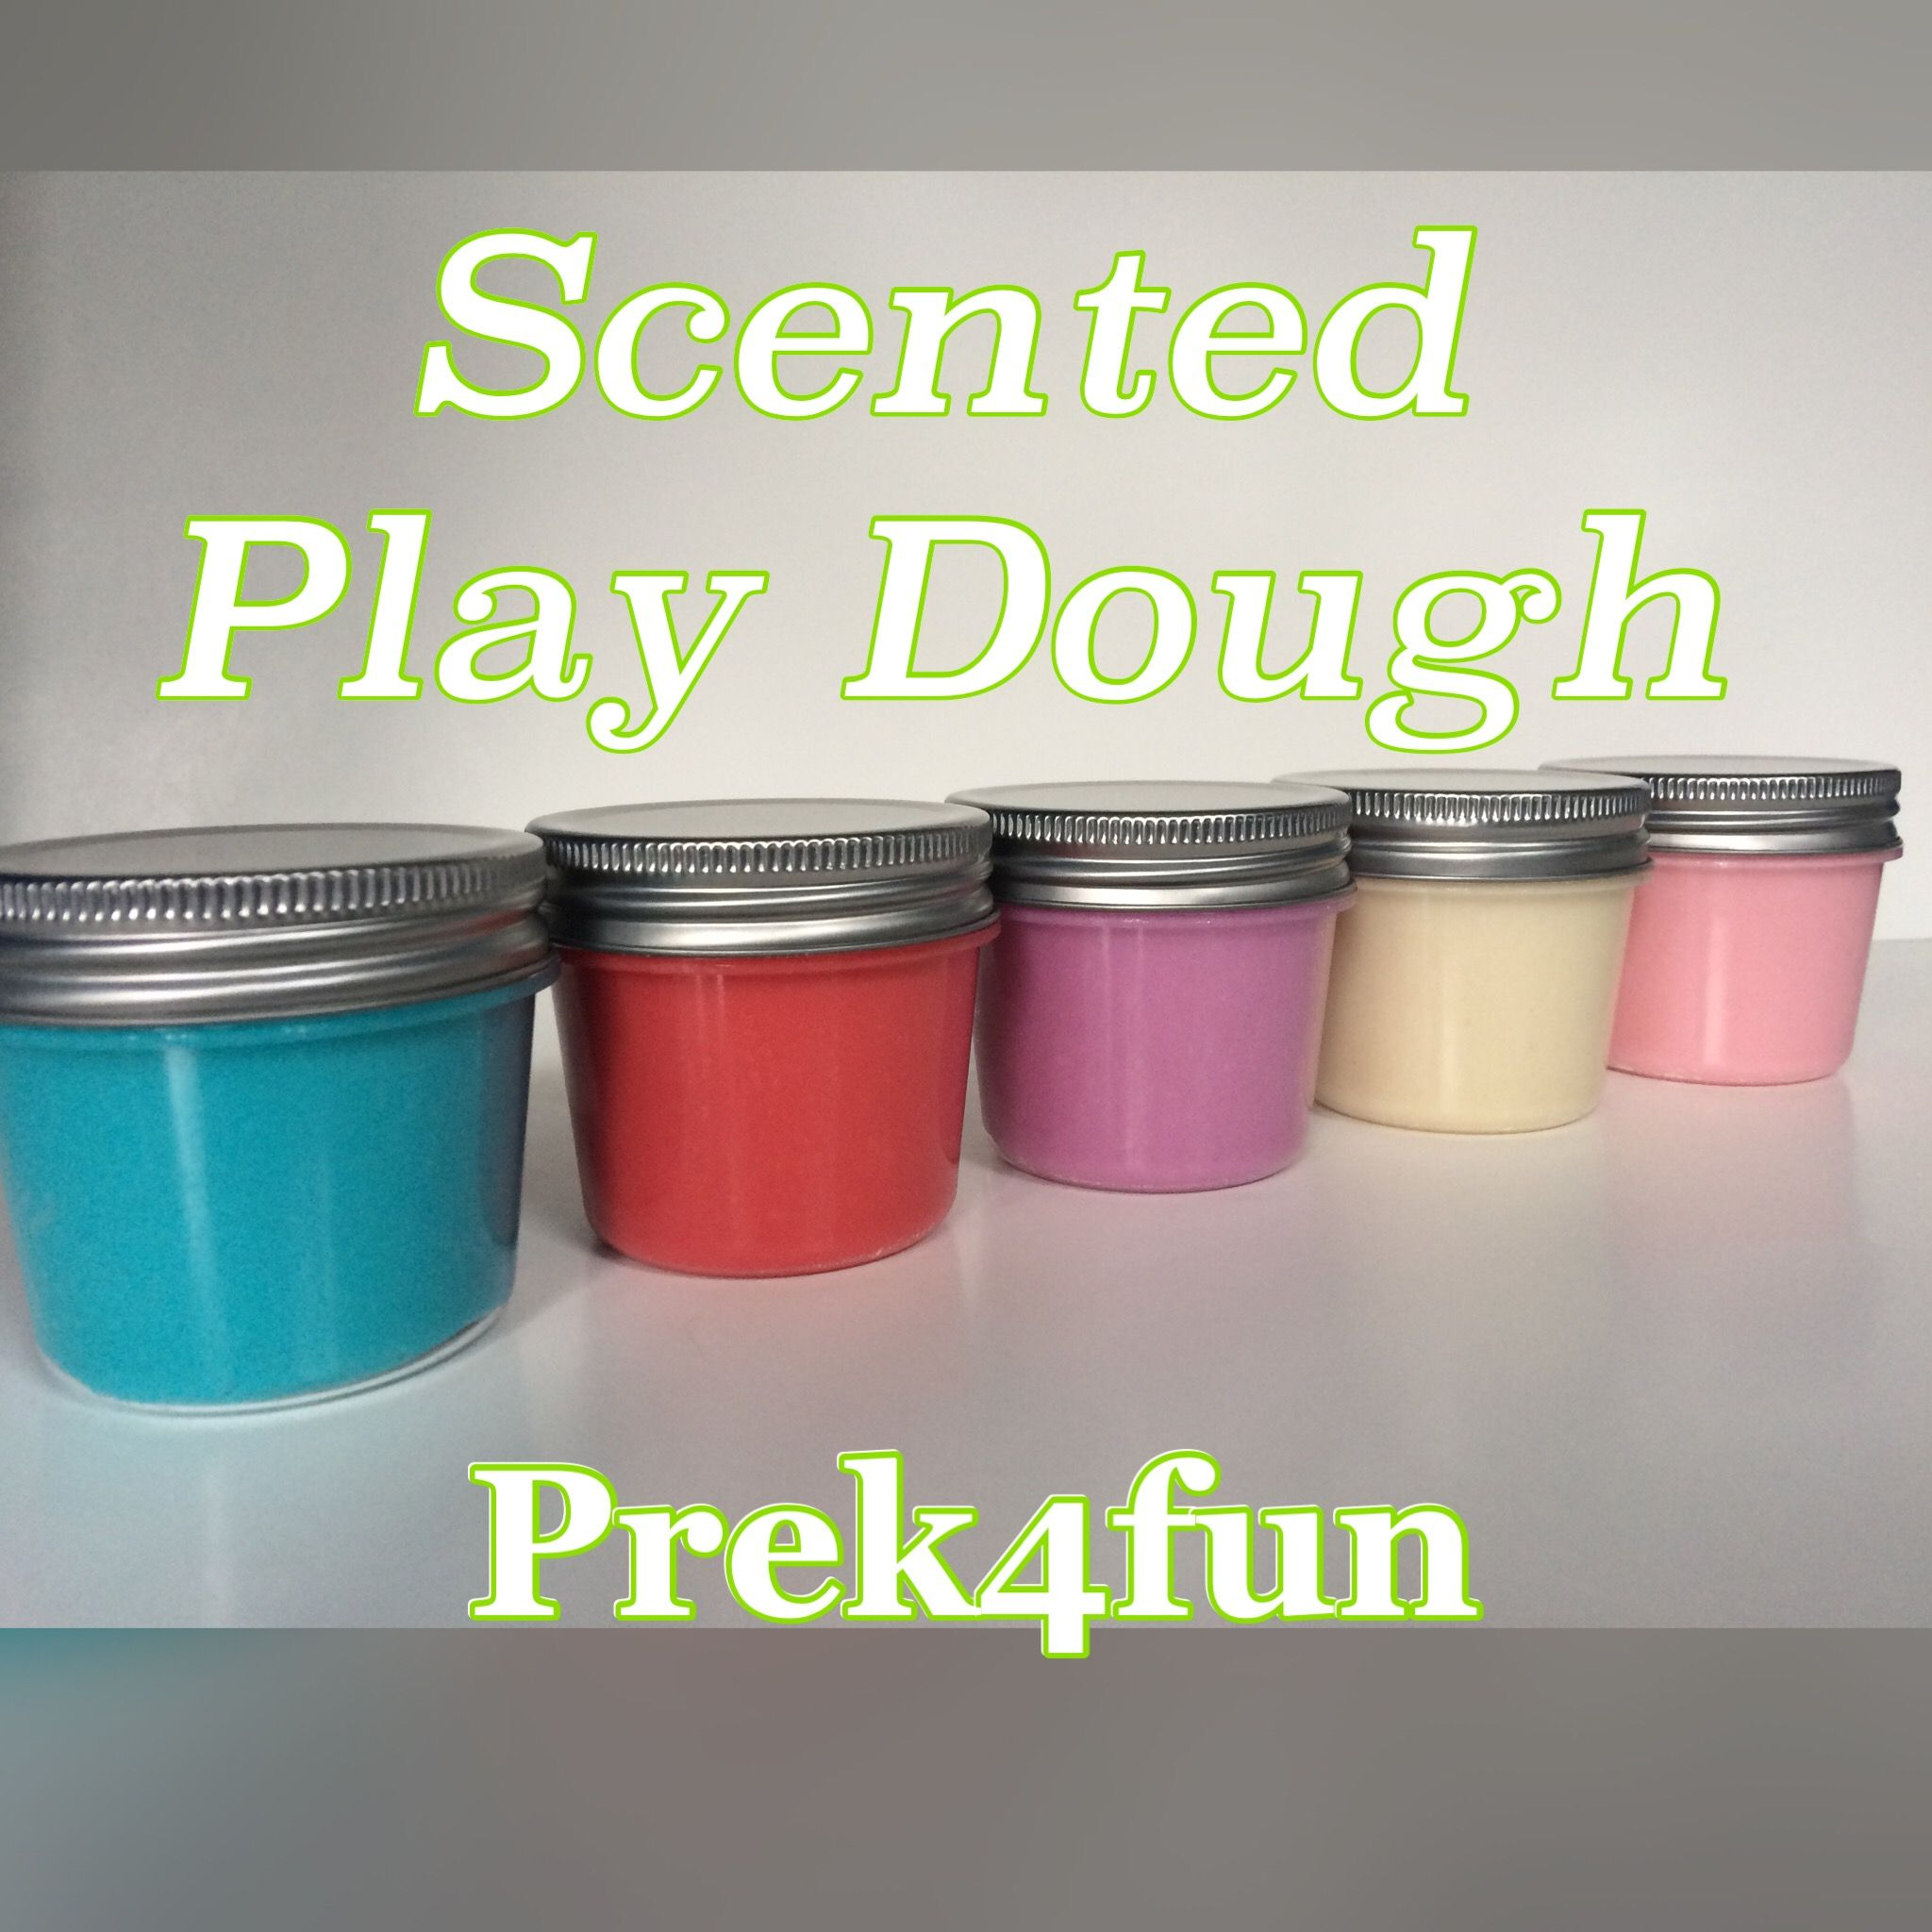 Pin By Prek4fun On Sensory Activities Preschool Prek4fun